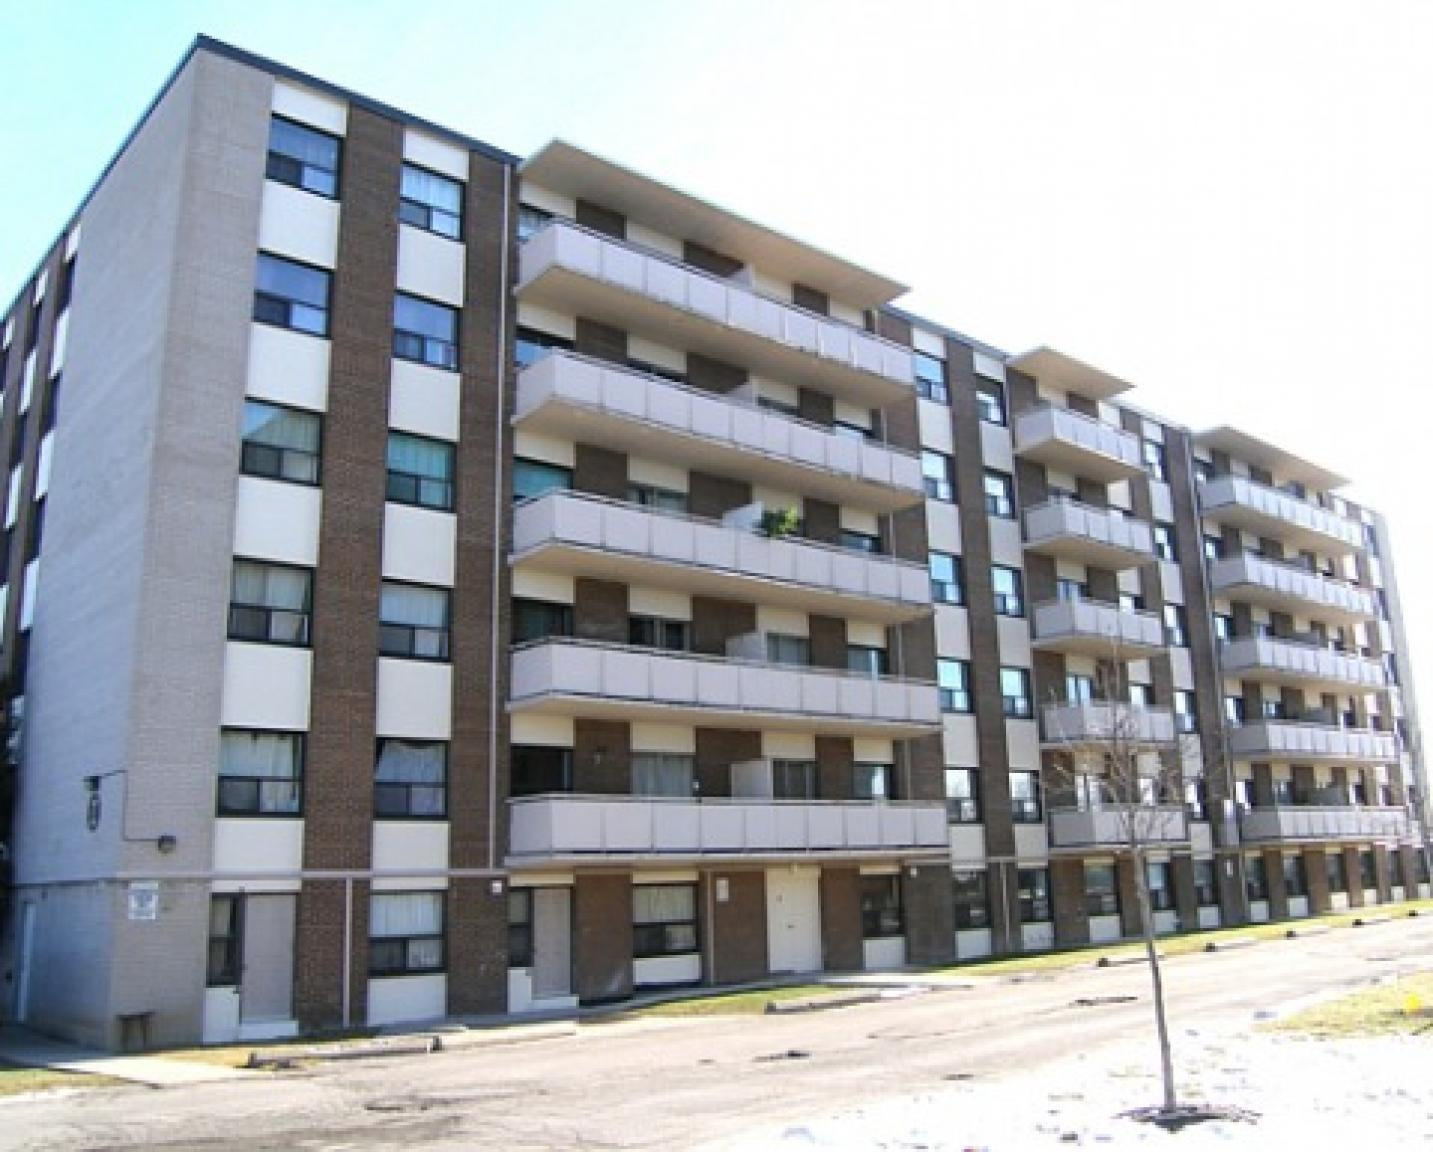 45 greenbrae circuit apartments toronto on walk score - 2 bedroom apartments for rent toronto ...